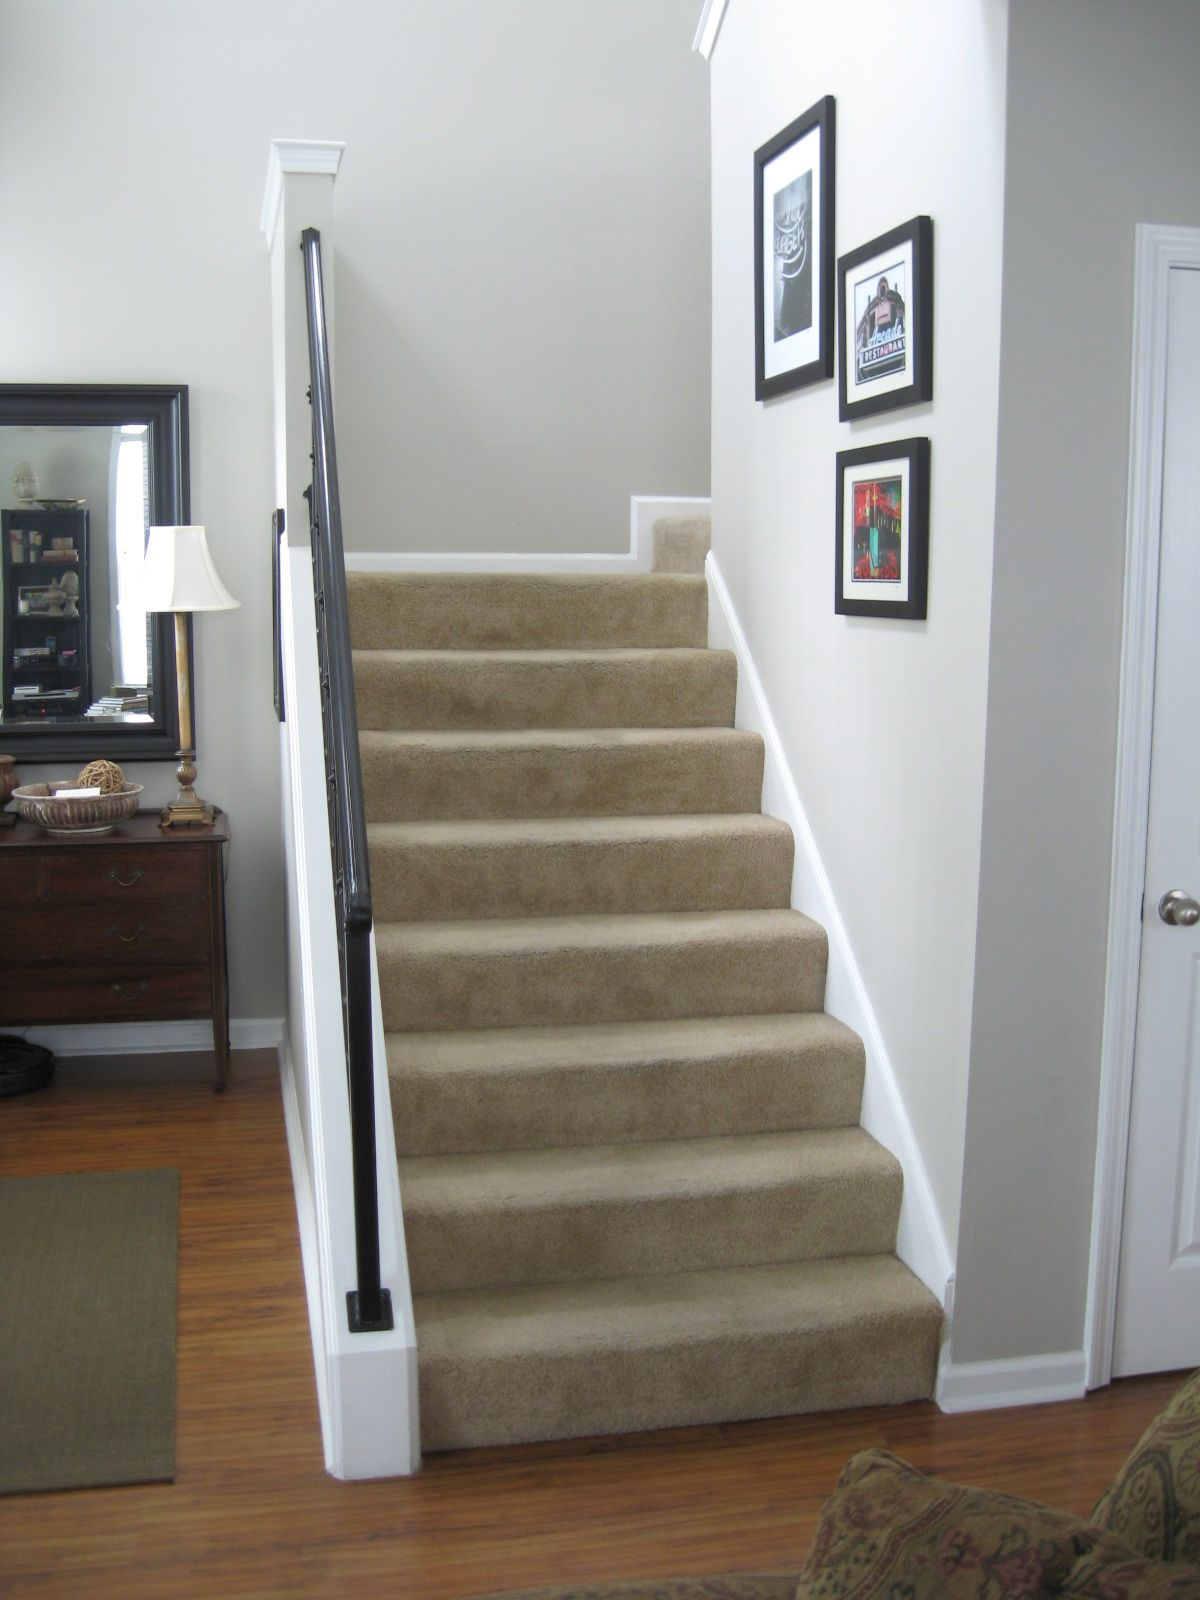 carpeted stairs design visit more http awoodrailing com stairs carpeted stairs design visit more http awoodrailing com